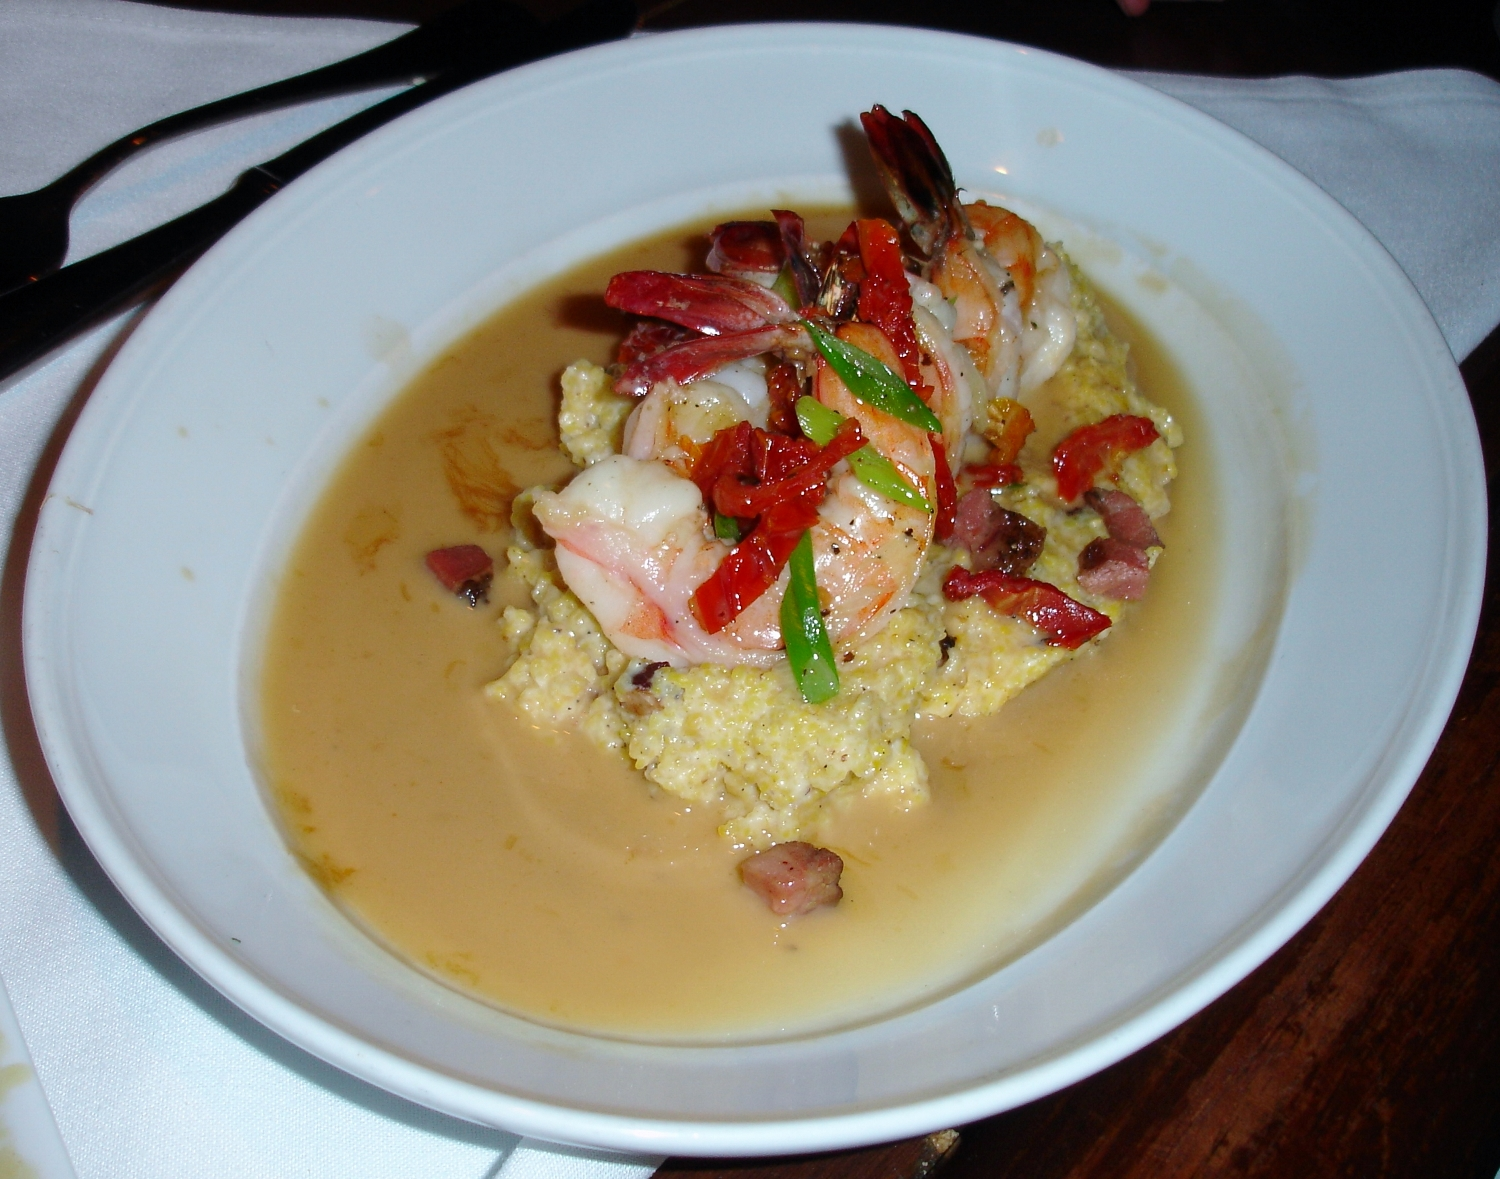 Lowcountry Shrimp and Grits is a menu staple at Trap Rock. The stone ground grits are garnished with tasso and sundried tomatoes, and are dressed with a sherry pan sauce.